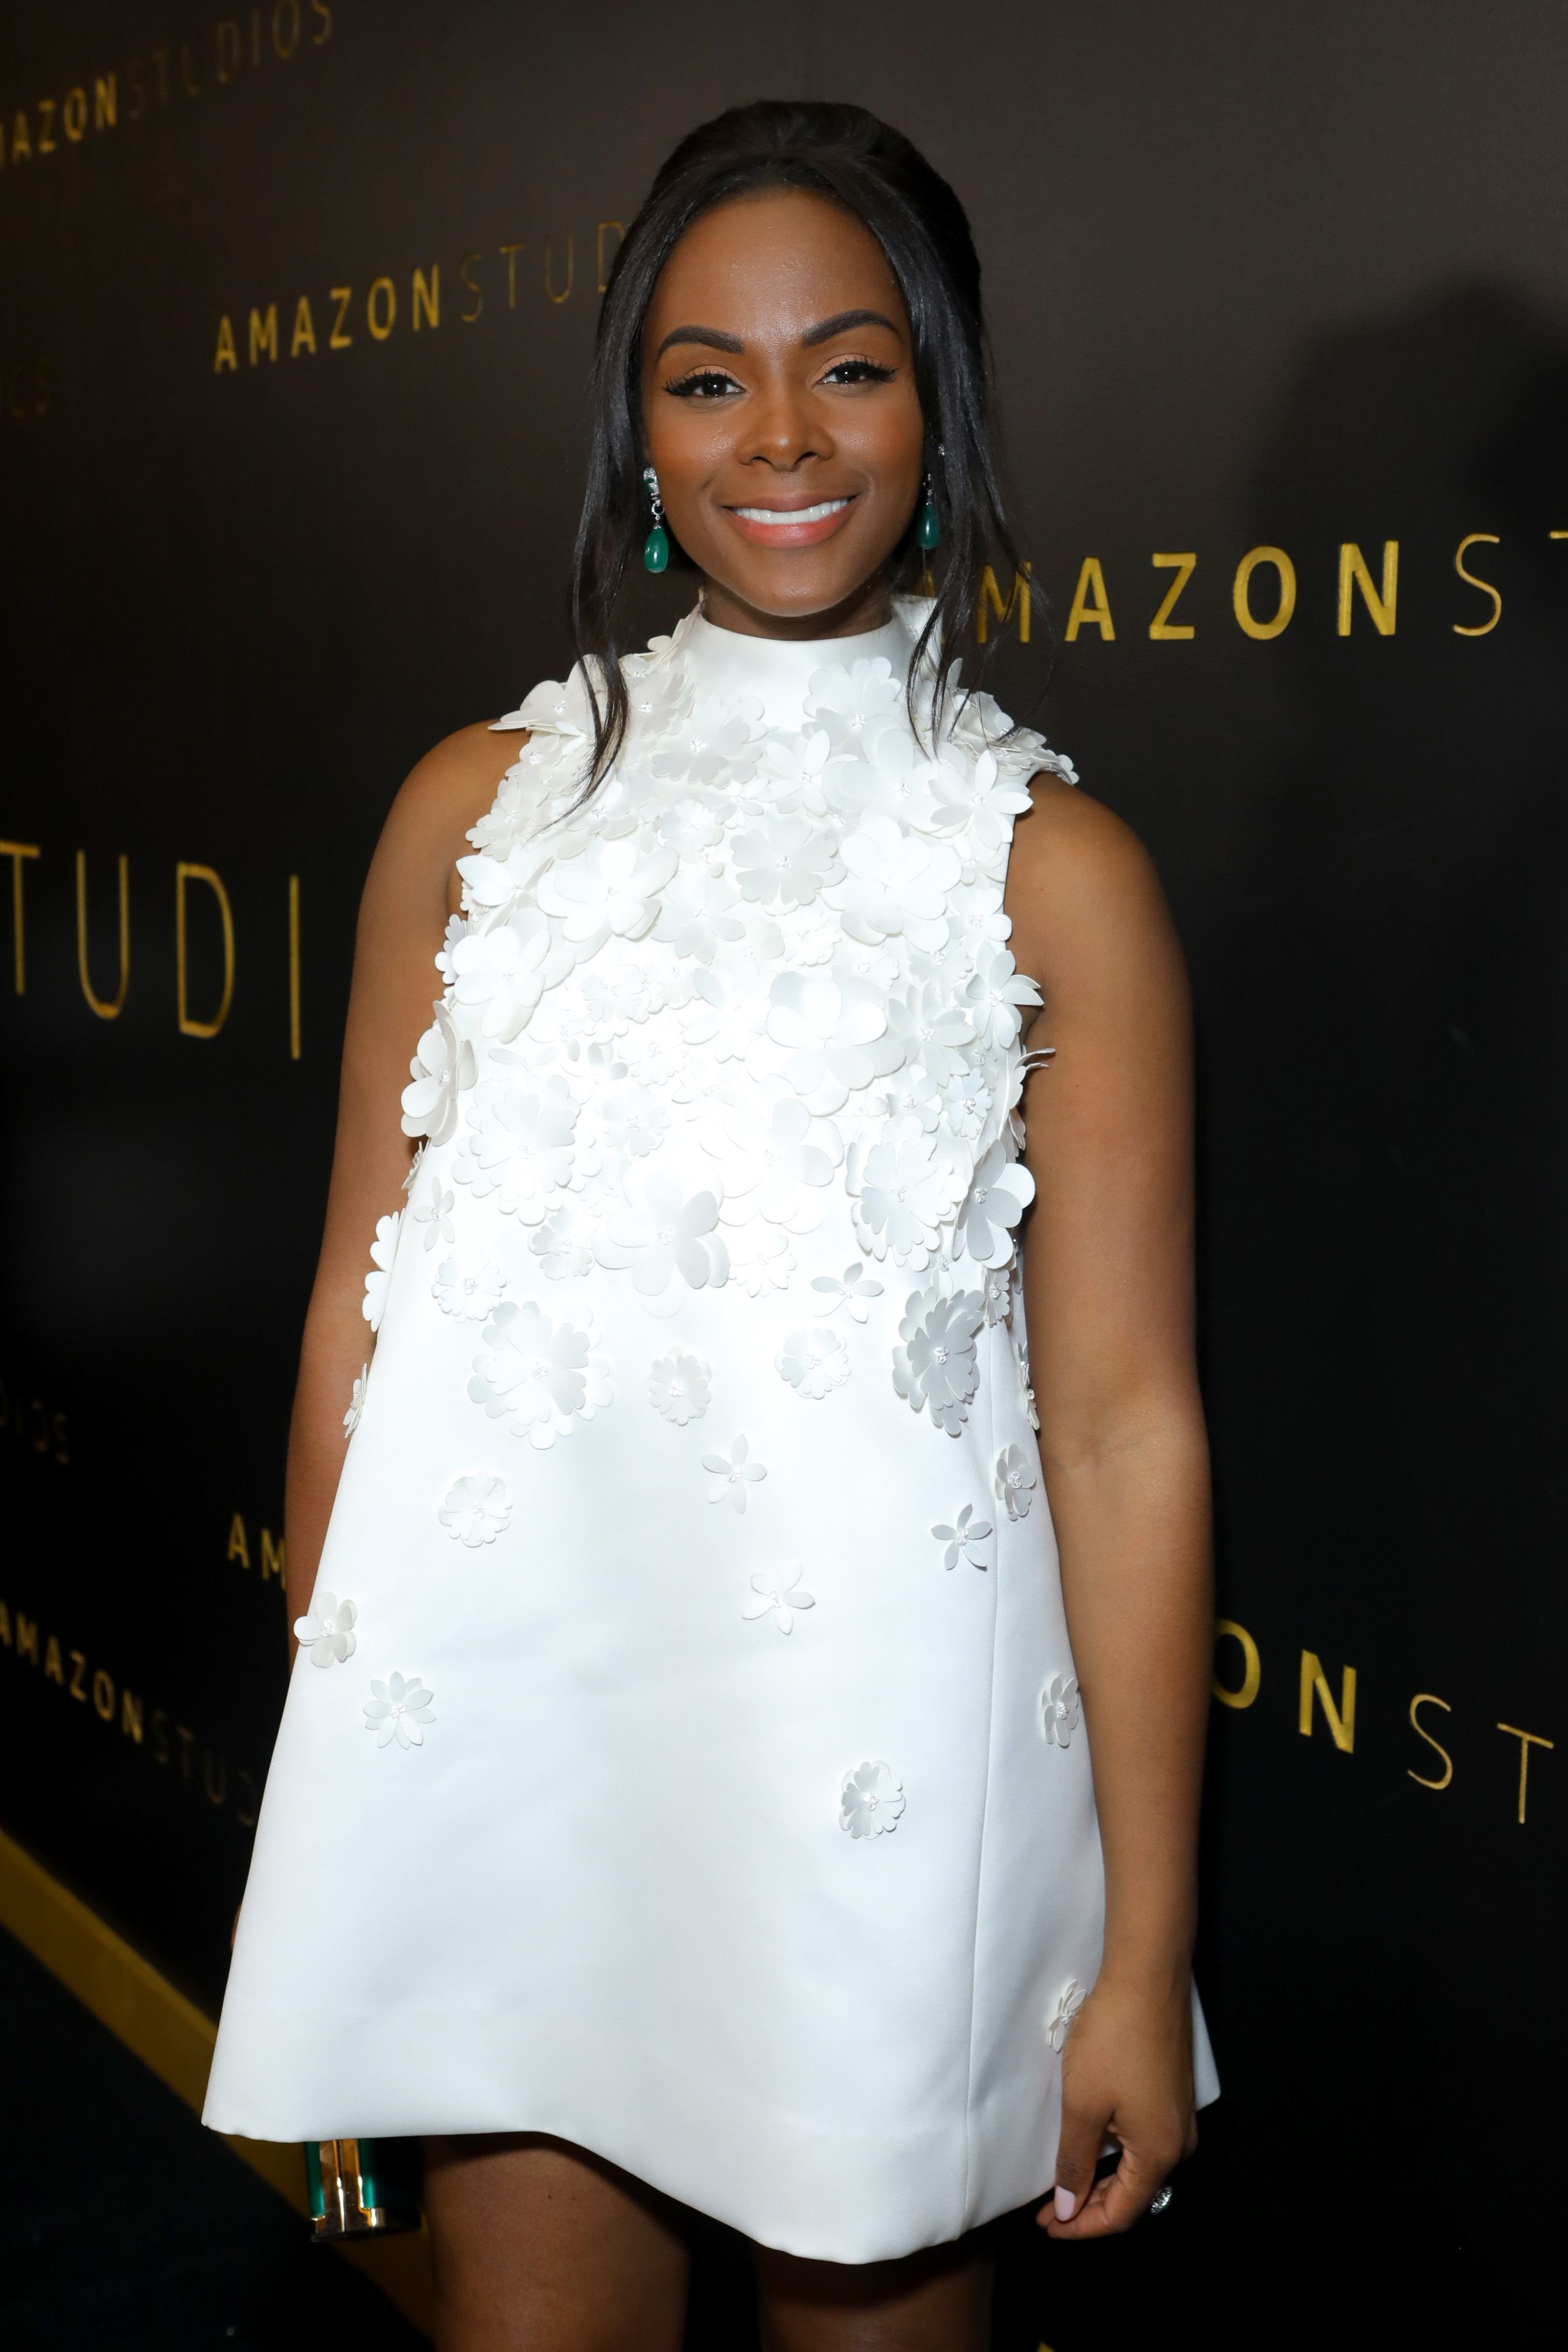 Tika Sumpter at the Amazon Studios Golden Globes After Party on January 5, 2020 in California. | Source: Getty Images